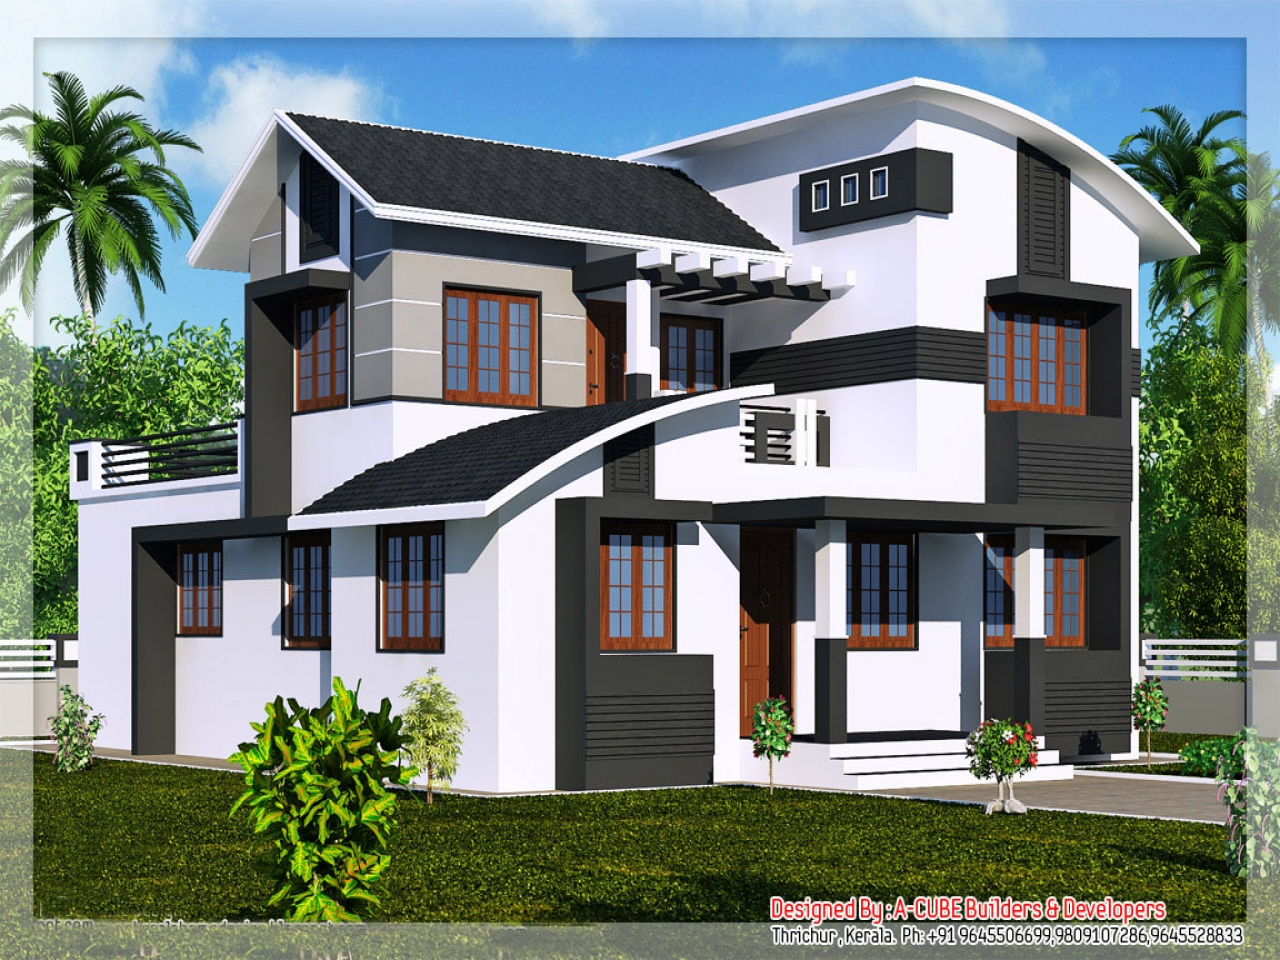 India duplex house design duplex house plans and designs for Small duplex house plans in india